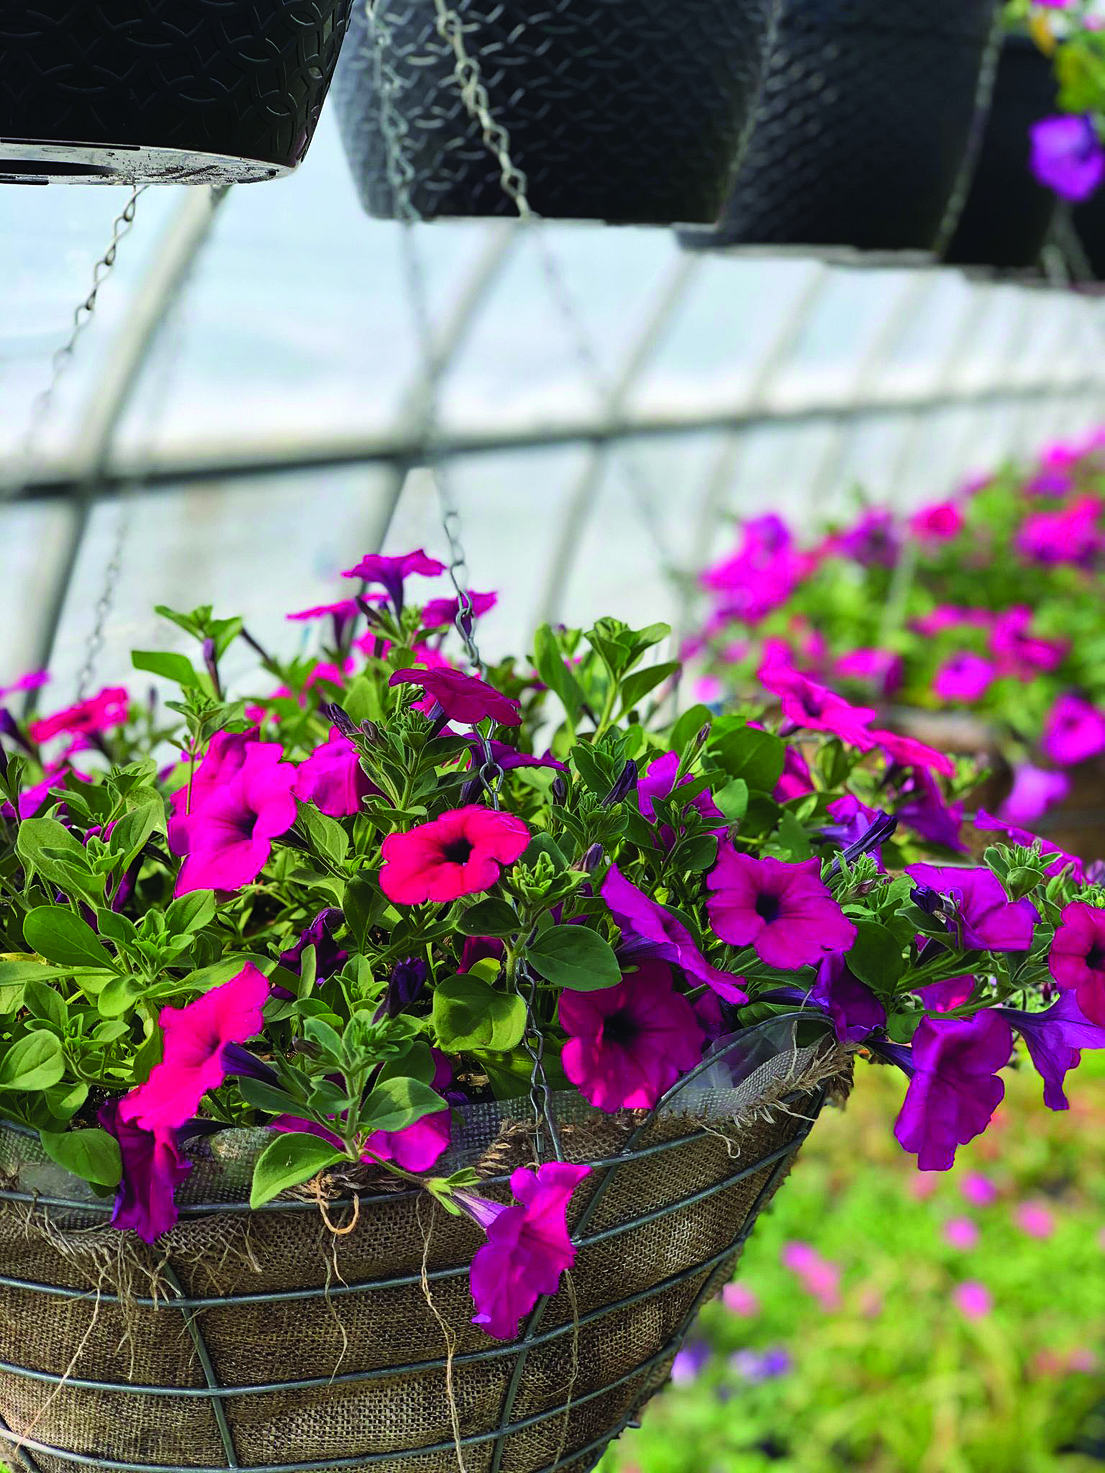 Project Petunia set to bloom